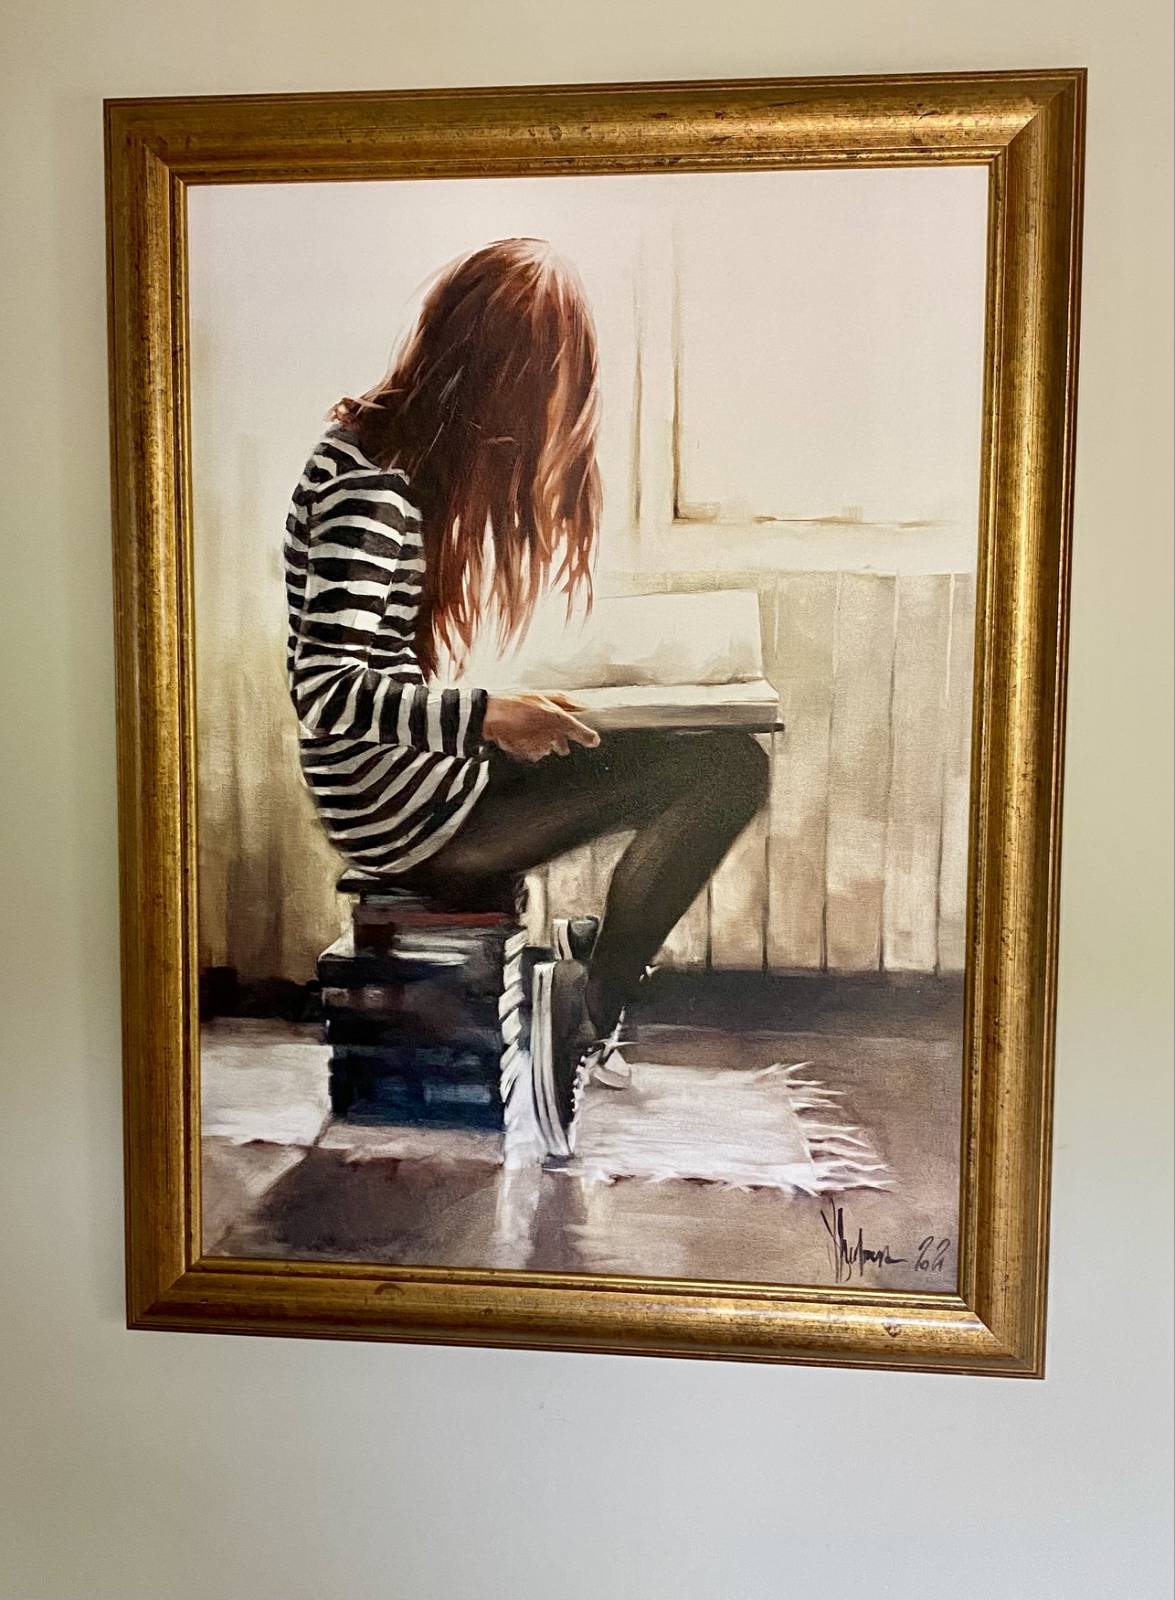 Oil Painting Love to read on the wall